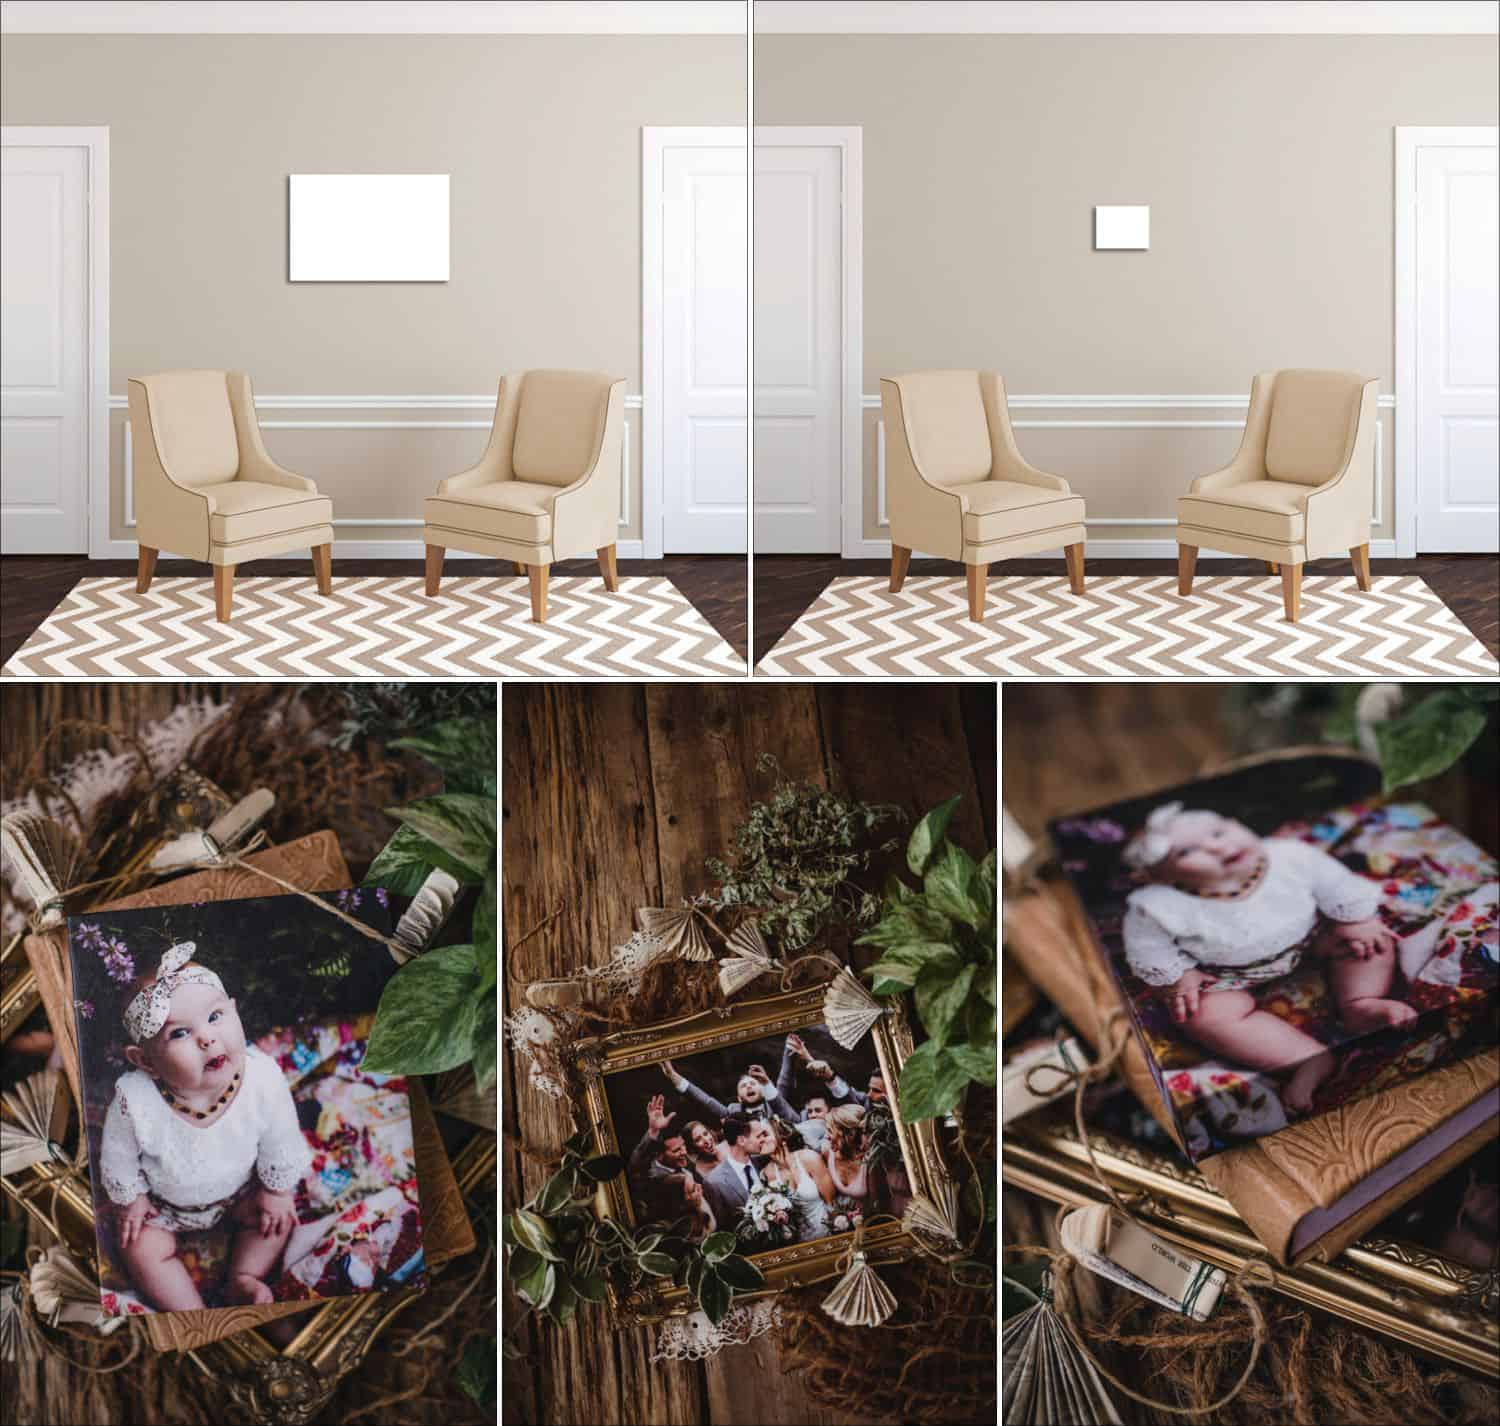 Twig & Olive's sample product images showing their canvases, frames, albums, and print sizes.